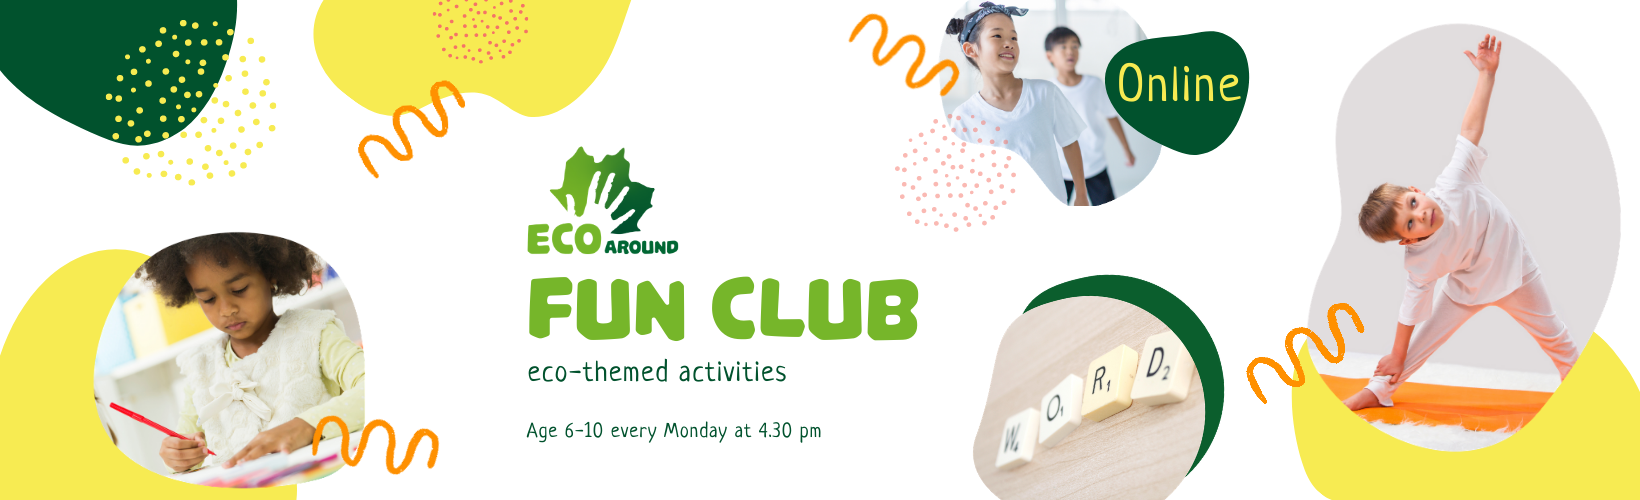 eco-themed activities